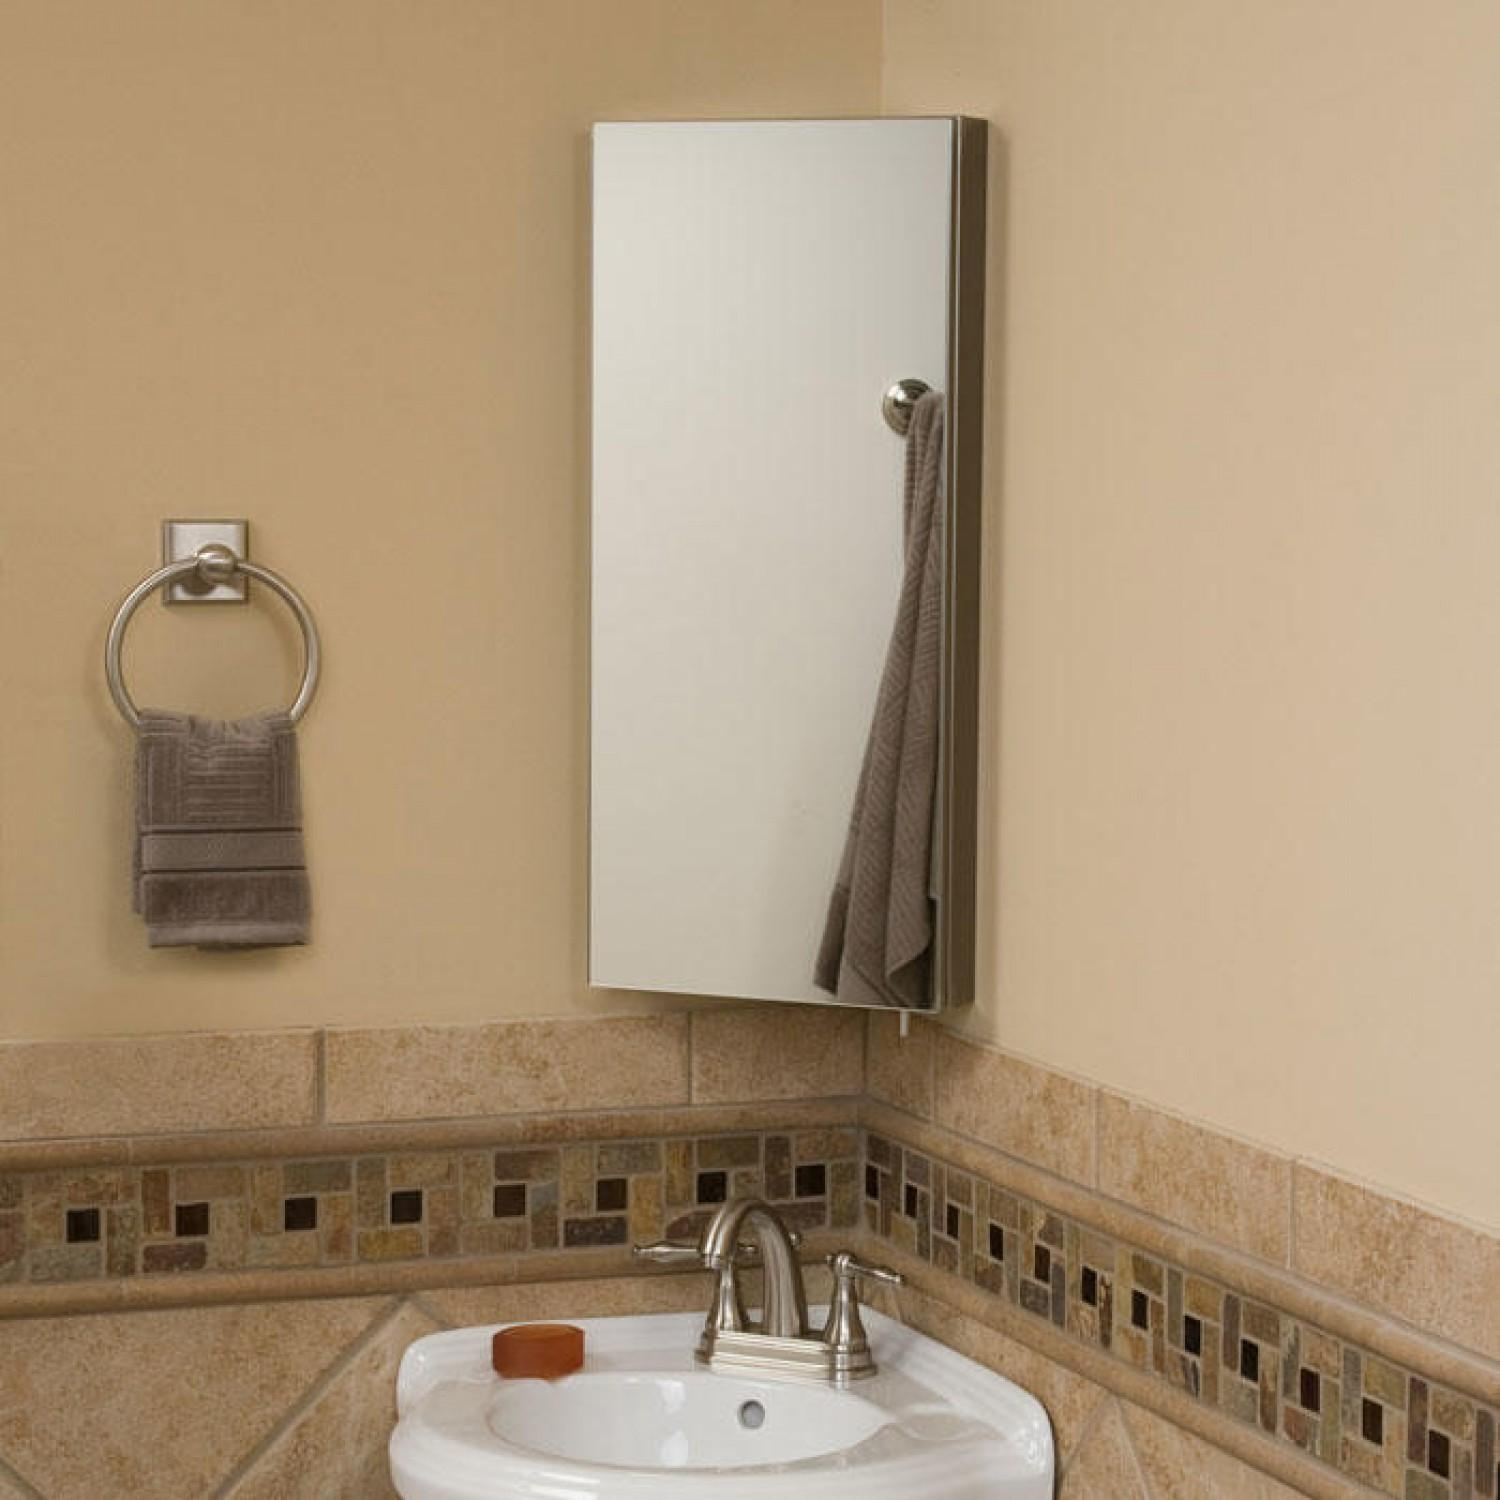 Bathroom Cabinets : Interior Rectangle Corner Mirror And White Regarding Safety Mirrors For Bathrooms (View 3 of 20)